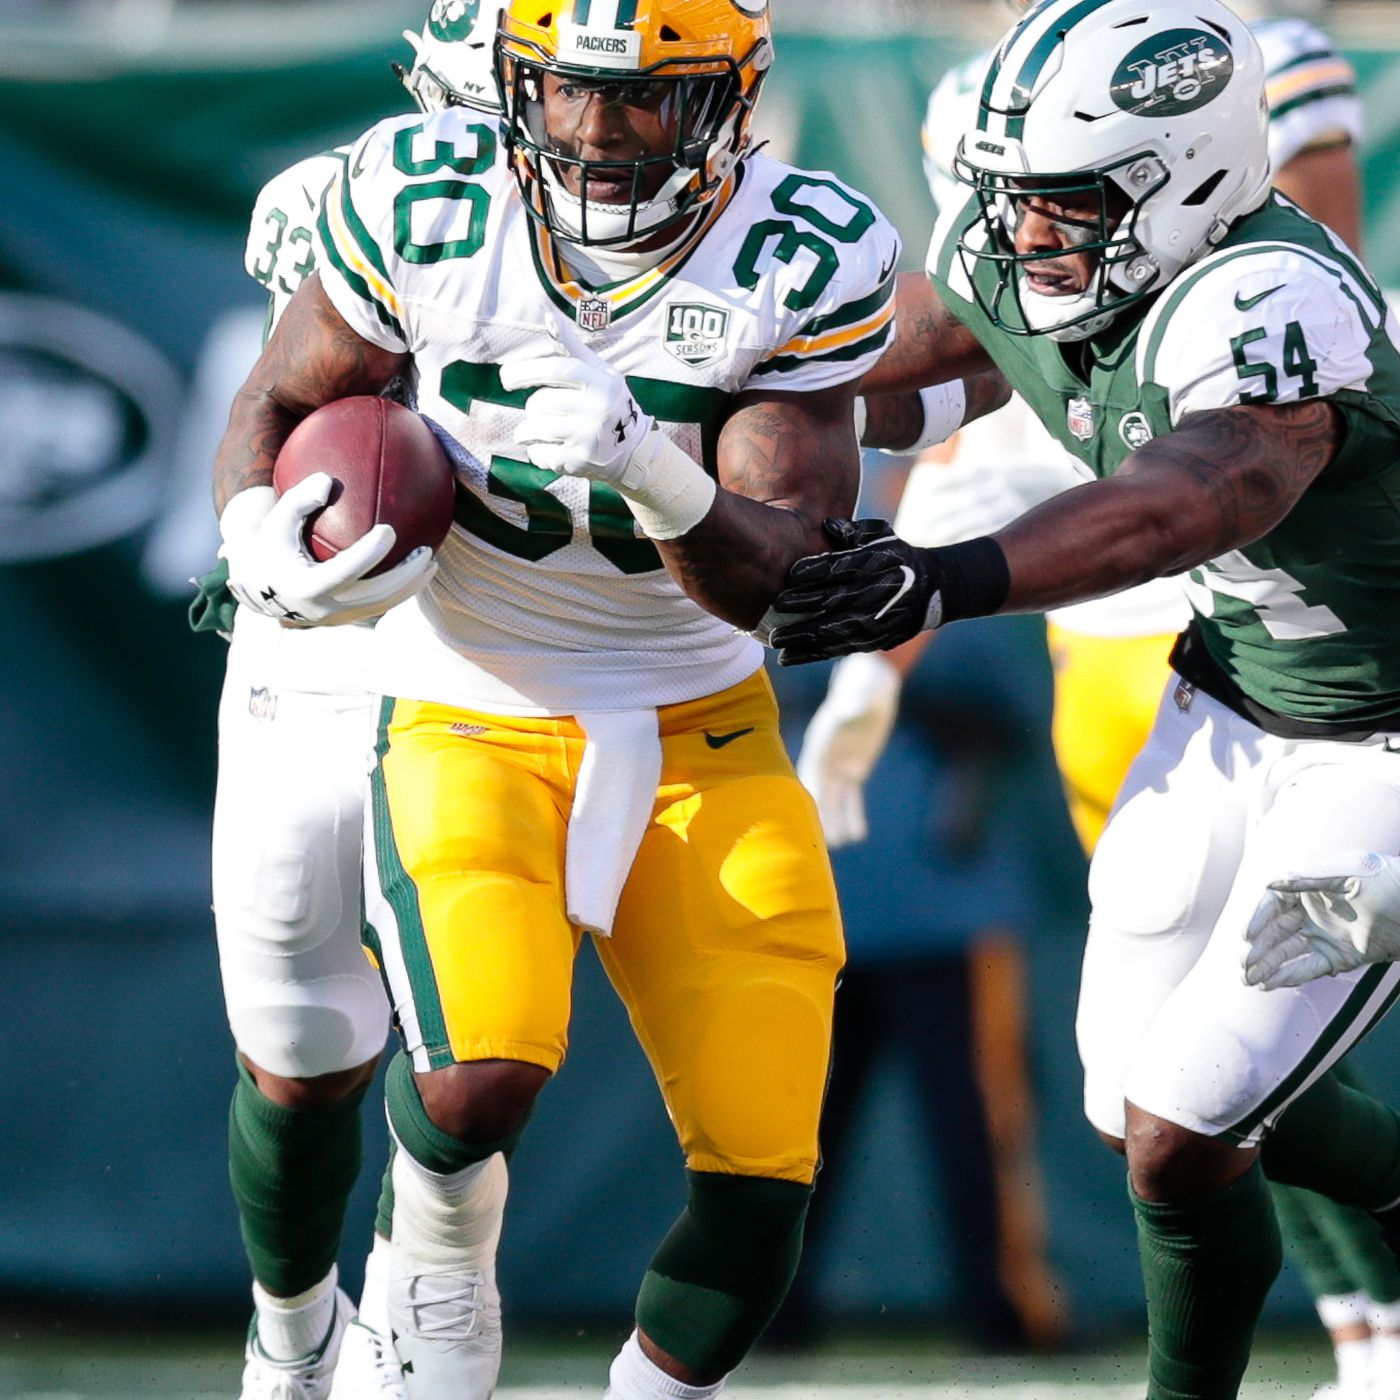 Packers 2019 Training Camp Roster: RBs are good, varied, and